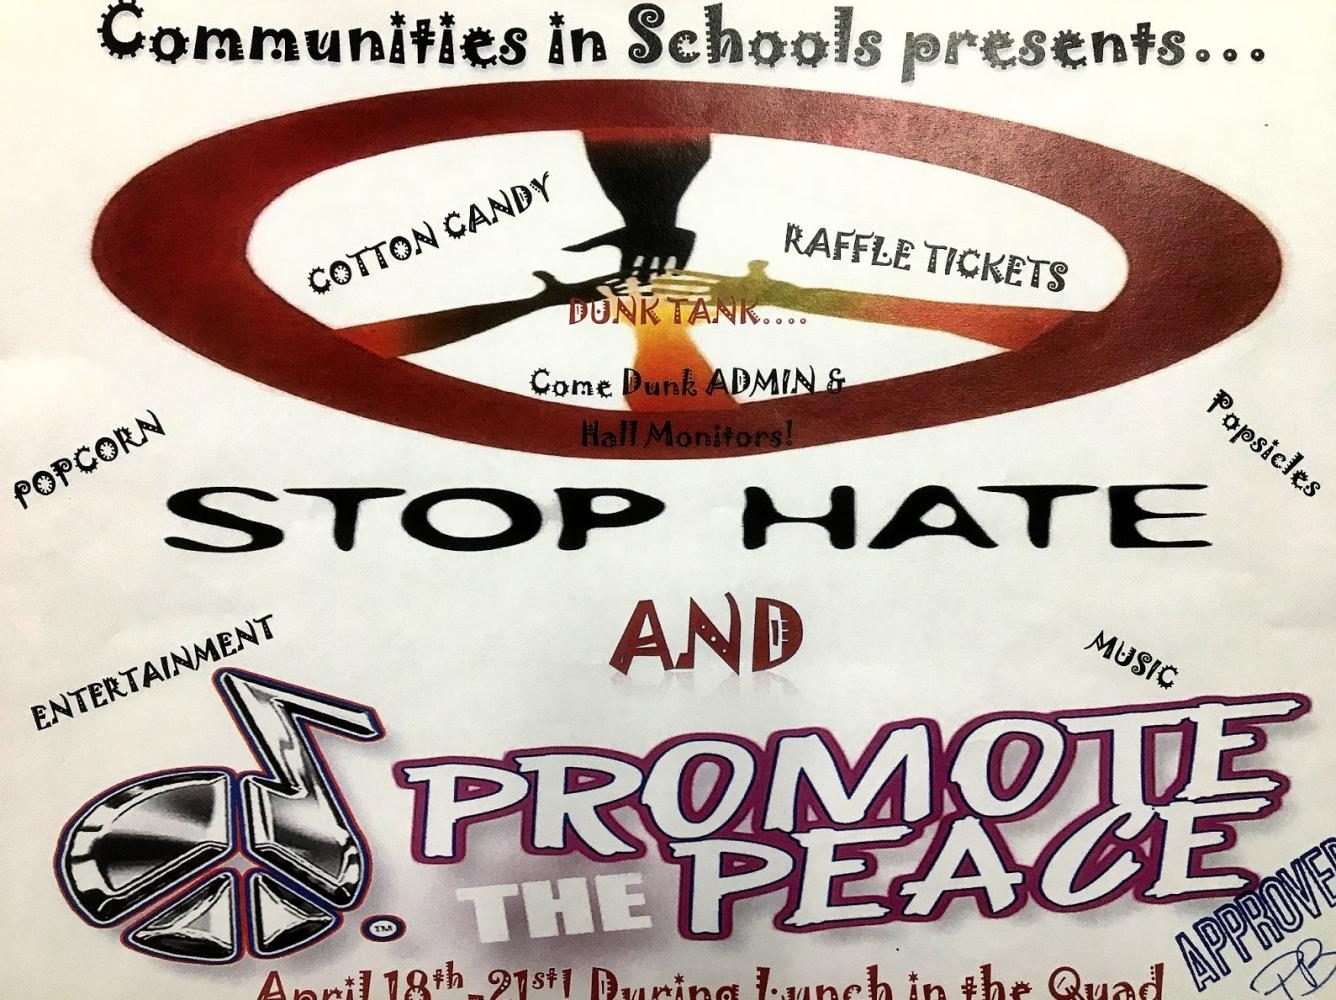 The+Stop+Hate+And+Promote+Peace+Campaign+Helps+Cheyenne+Students+Unwind%21